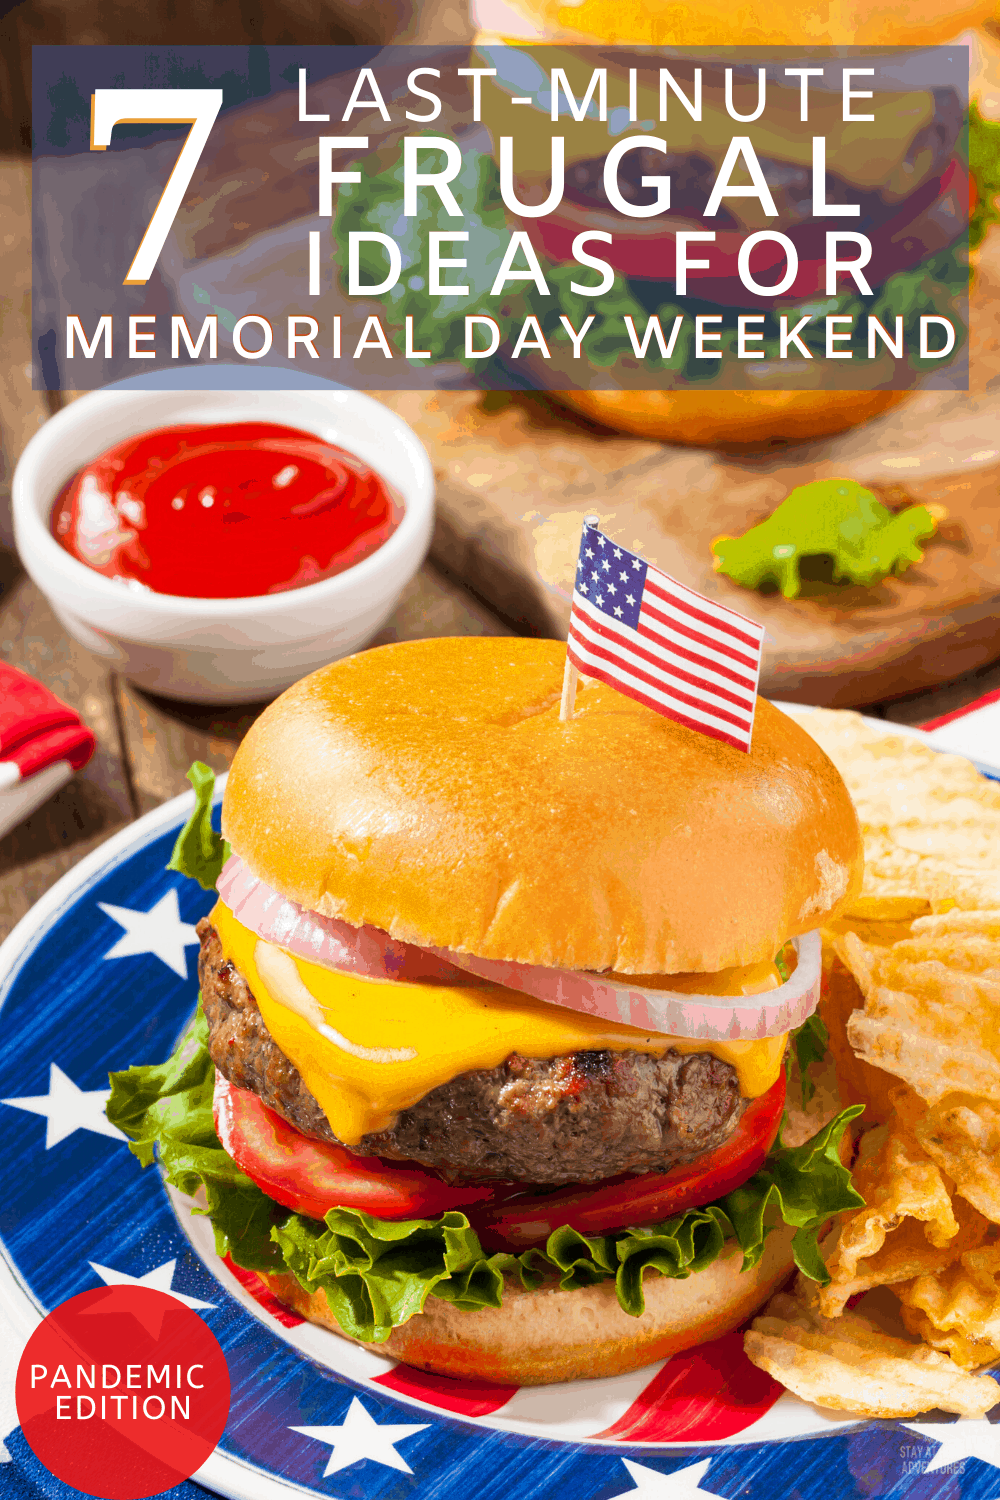 Memorial Day Weekend 2020 is around the corner and if frugal is your lifestyle we g frugal ideas that will save you money and are pandemic-friendly#memorialday #memorialdayweekend #frugalideas  via @mystayathome